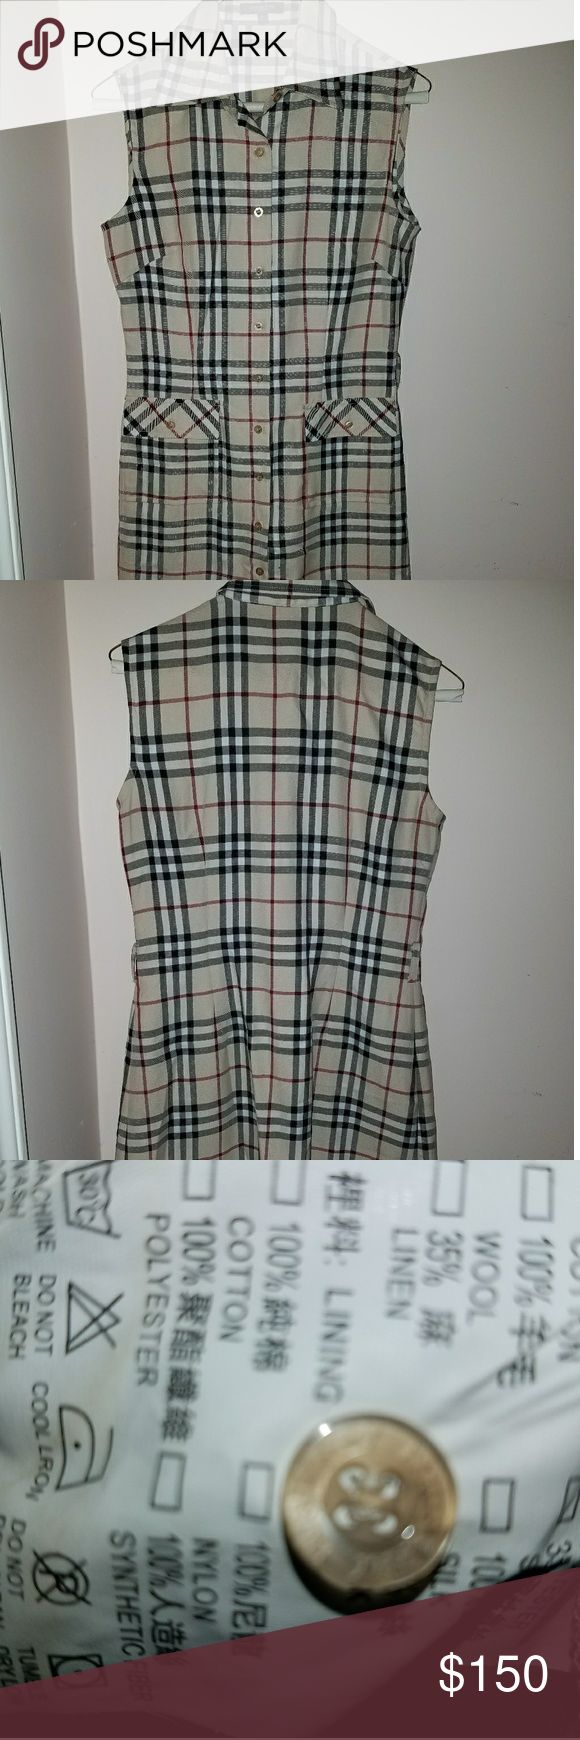 """Burberry Plaid Sleeveless Shirtdress ♧Classic Burberry London size Large  ♧Sleeveless Shirtdress w/Burberry logo buttons. 2 front pockets. (Extra button available on inside tag).  Bust:  17 1/2"""" Waist: 15 1/4"""" Length: 39""""  ♧Perfect condition, recently dry cleaned ♧No stains, holes, tears ♧Smoke/Pet free home  Purchased at Neiman Marcus Bal Harbour  ◇Matching belt was """"separated by mistake"""" from dress at cleaners. There is s possibility they may locate it. Slim belt or ribbon would look posh…"""